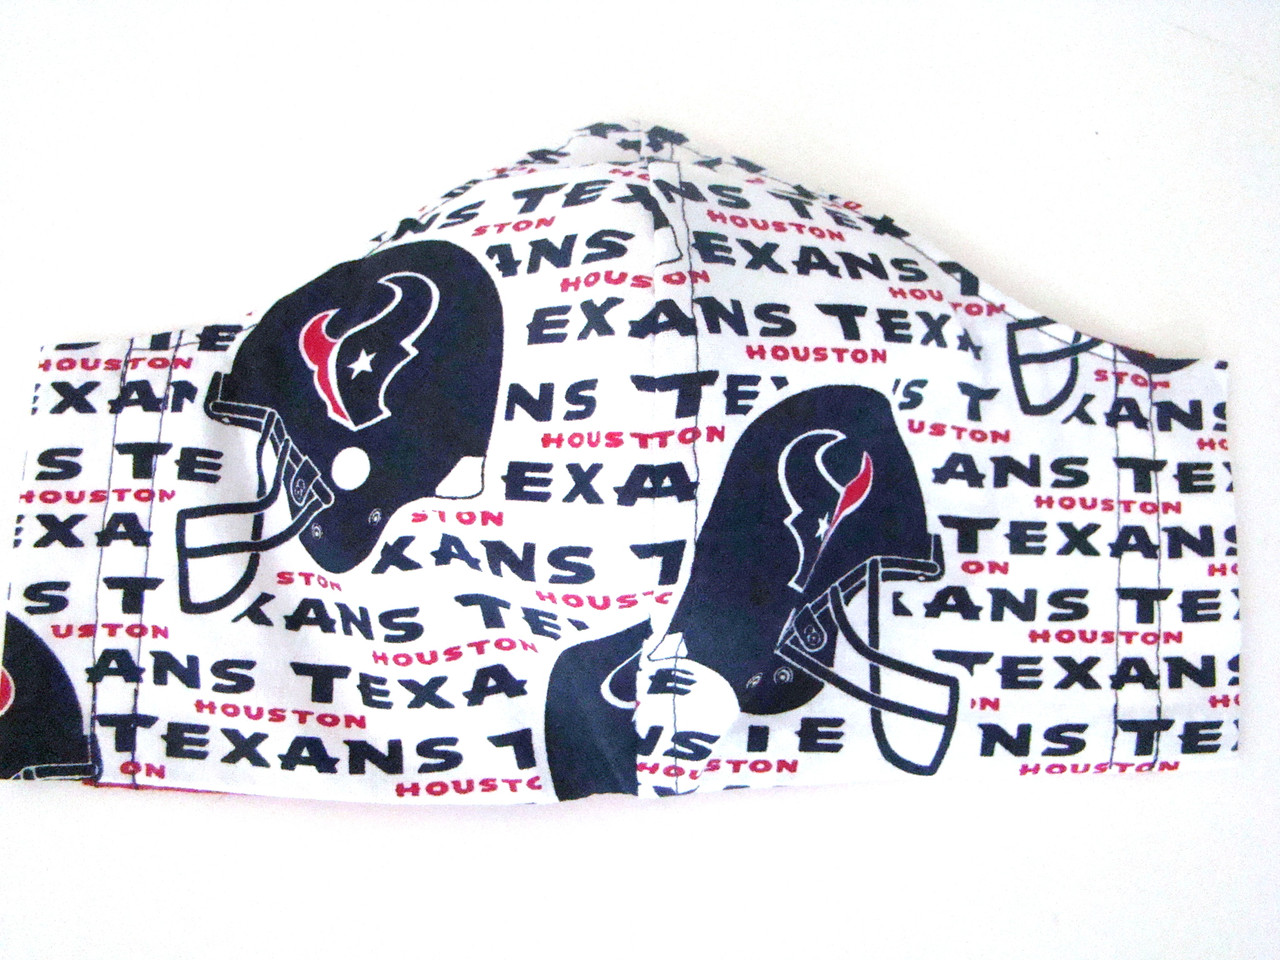 Houston Texans (FM-TEXANS)